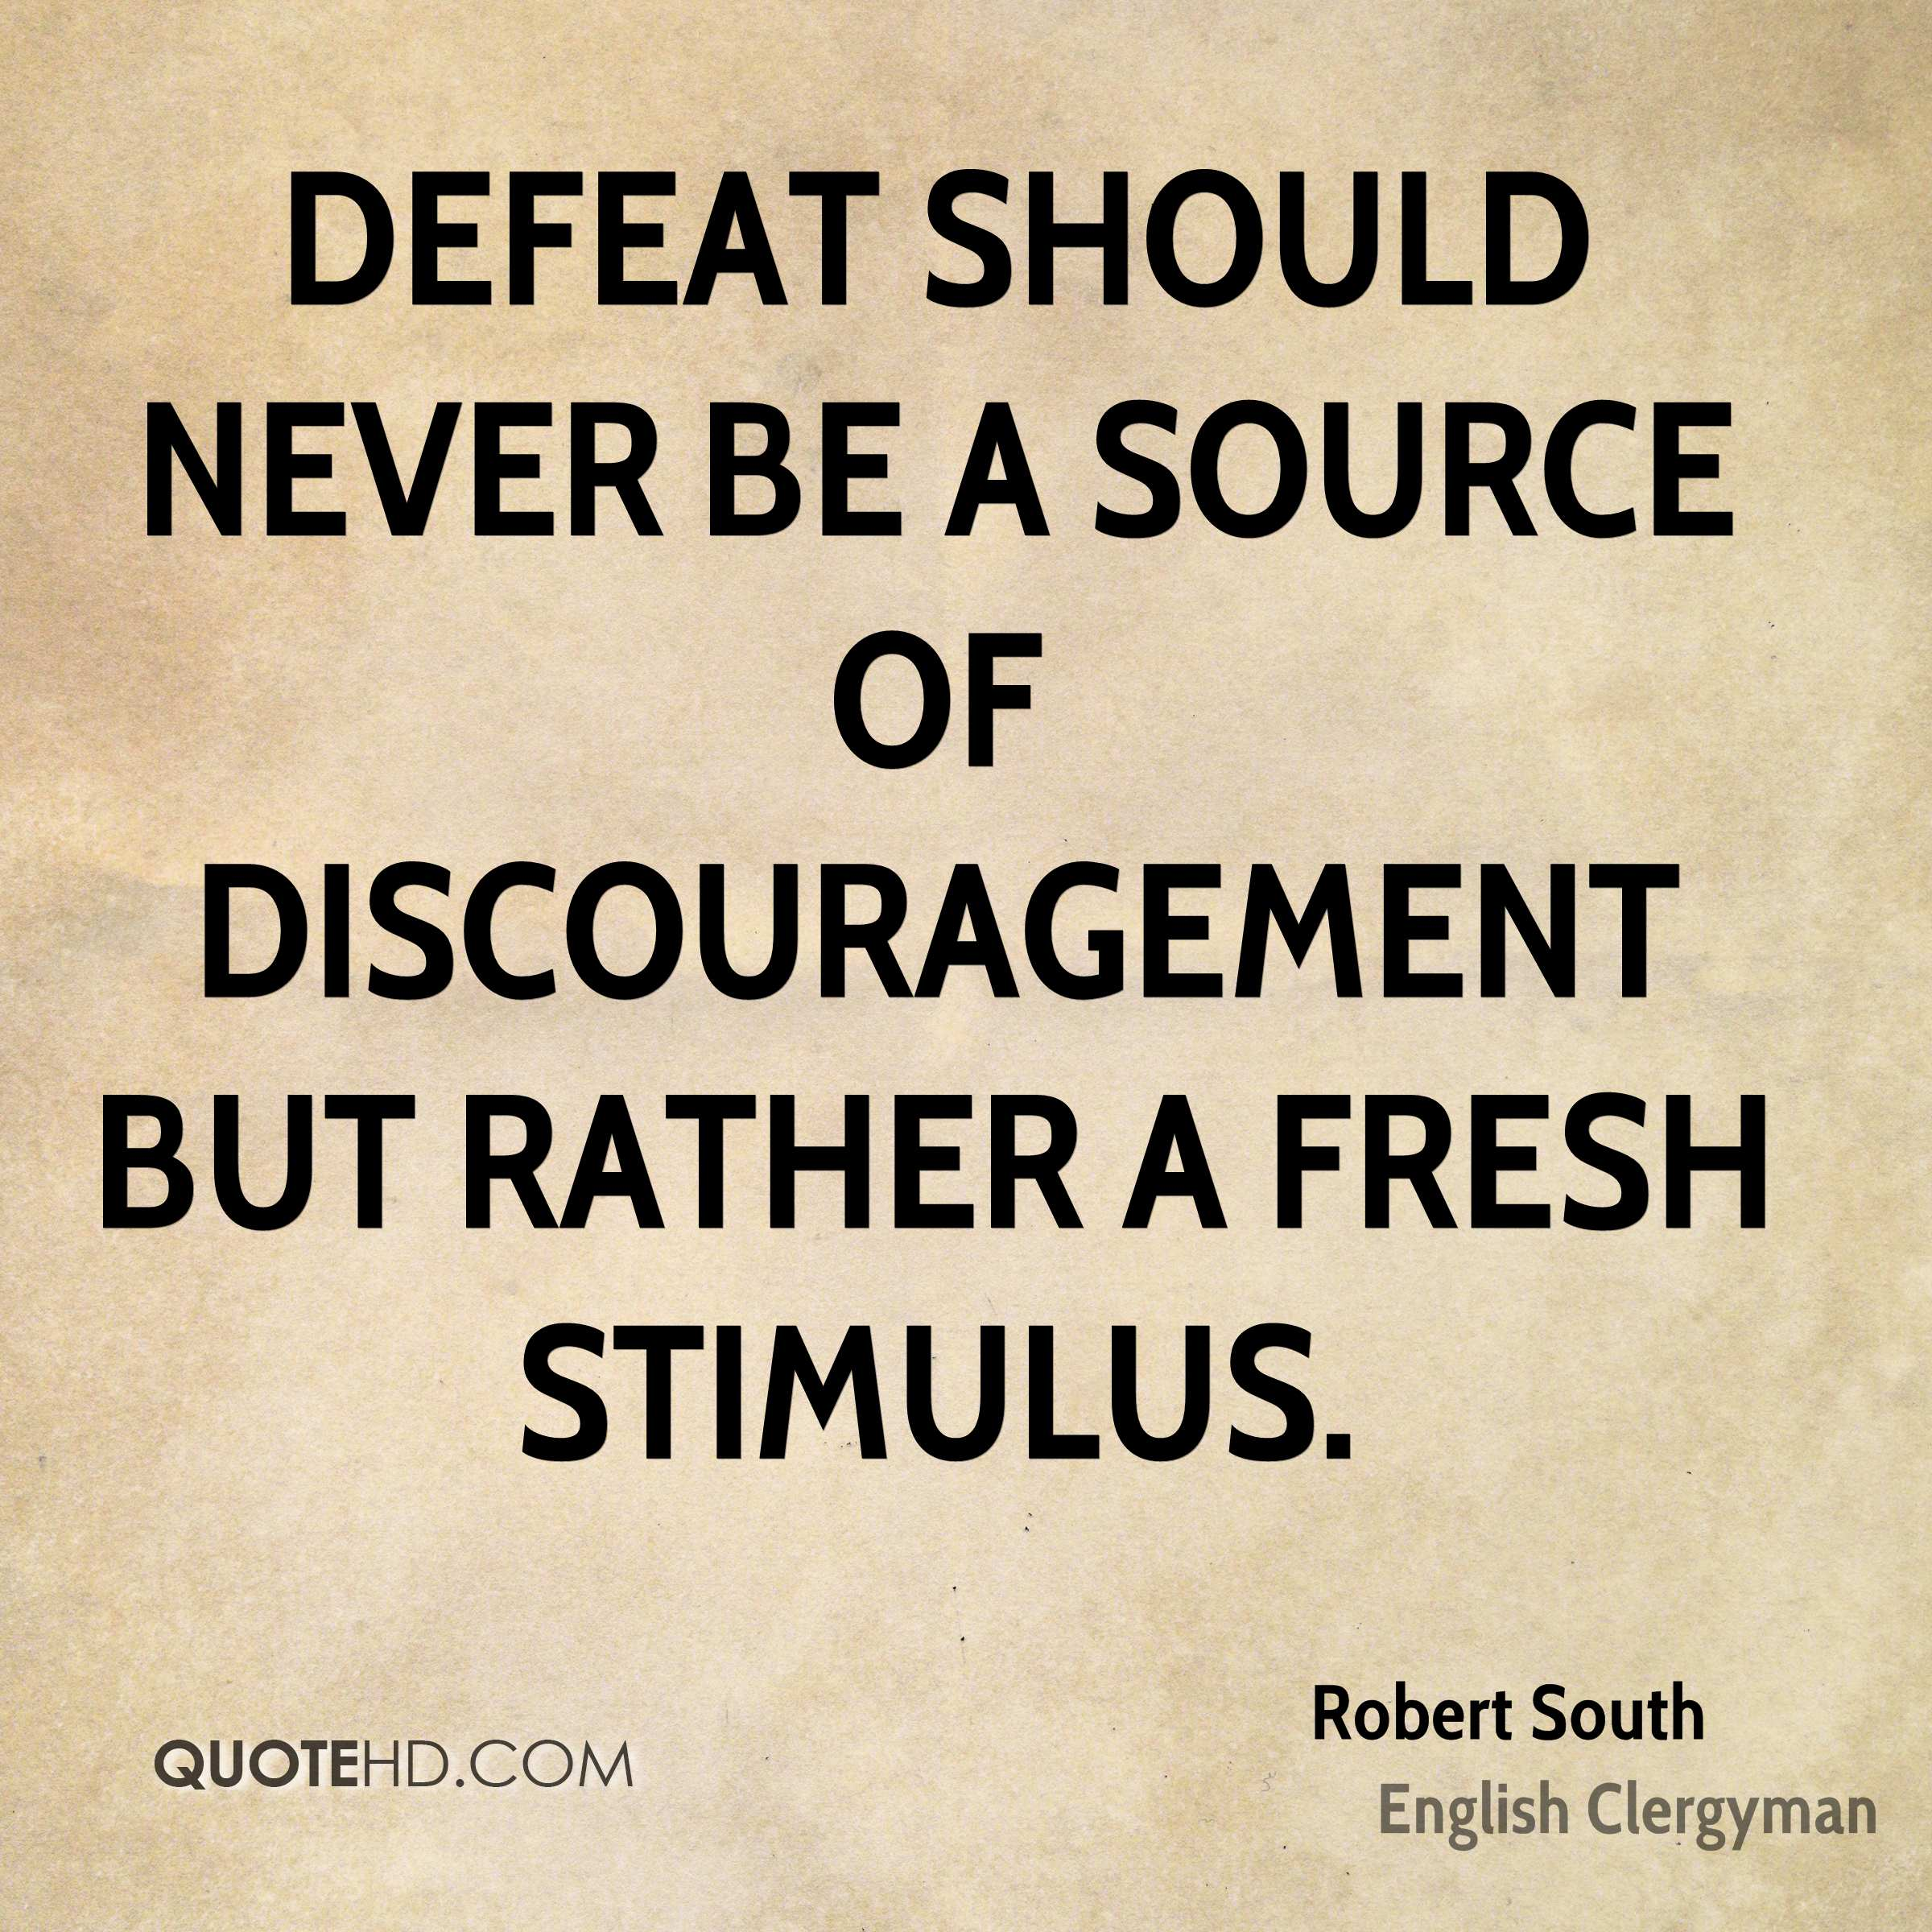 Defeat should never be a source of discouragement but rather a fresh stimulus.